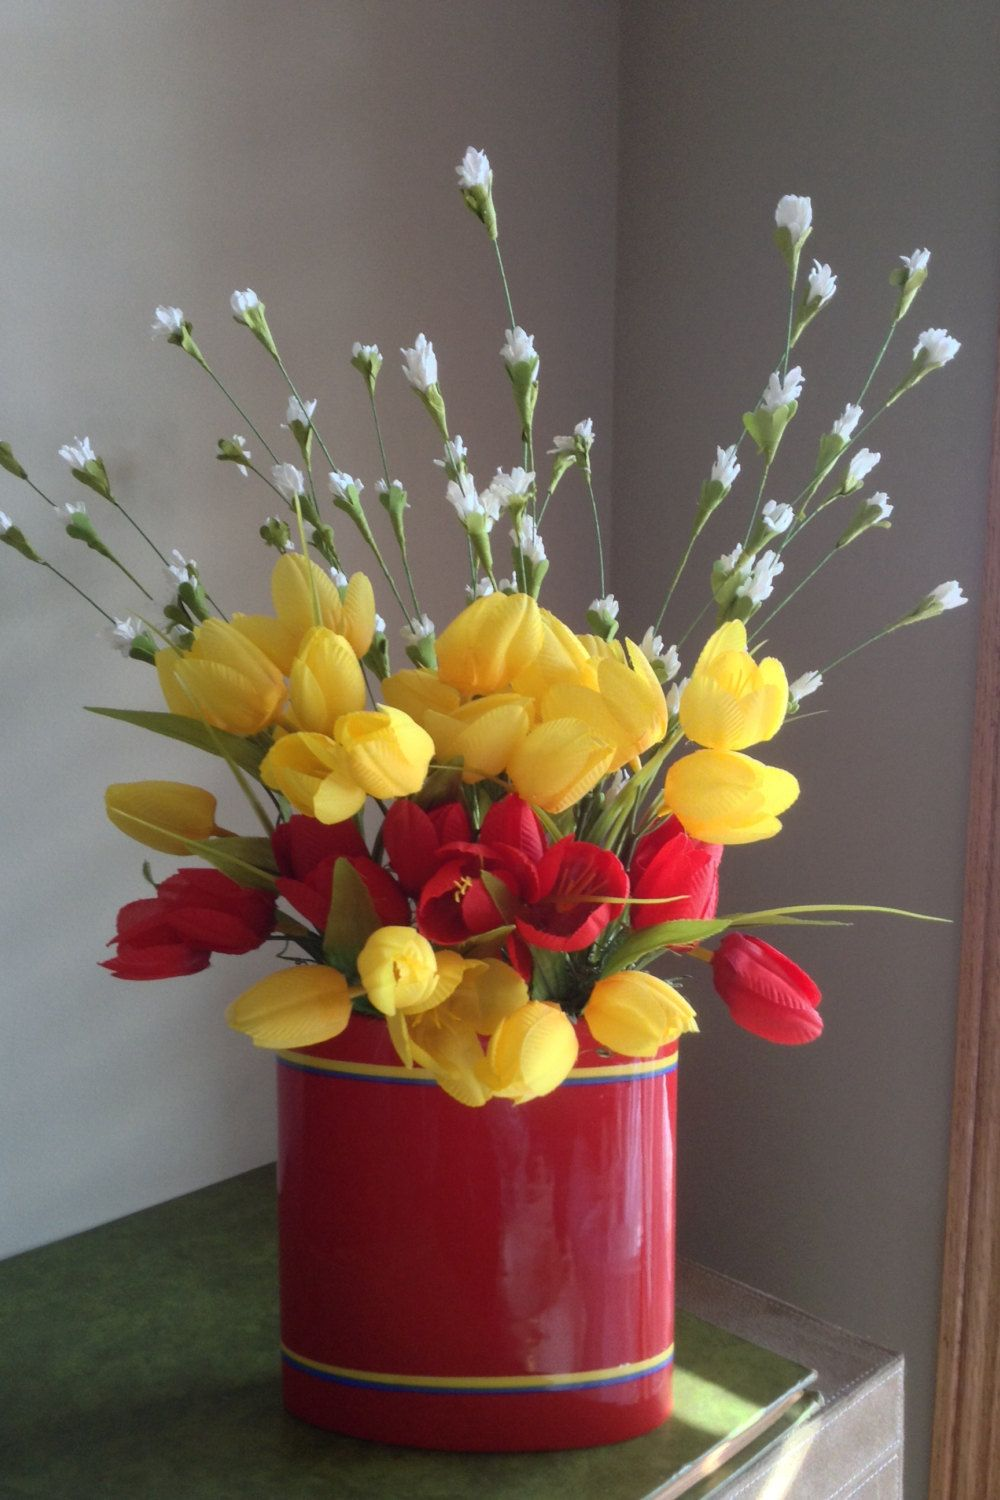 Red tulips yellow tulips silk flower arrangement red ceramic vase red tulips yellow tulips silk flower arrangement red ceramic vase faux flowers red and yellow flowers home decor bright flowers by nauticocreations mightylinksfo